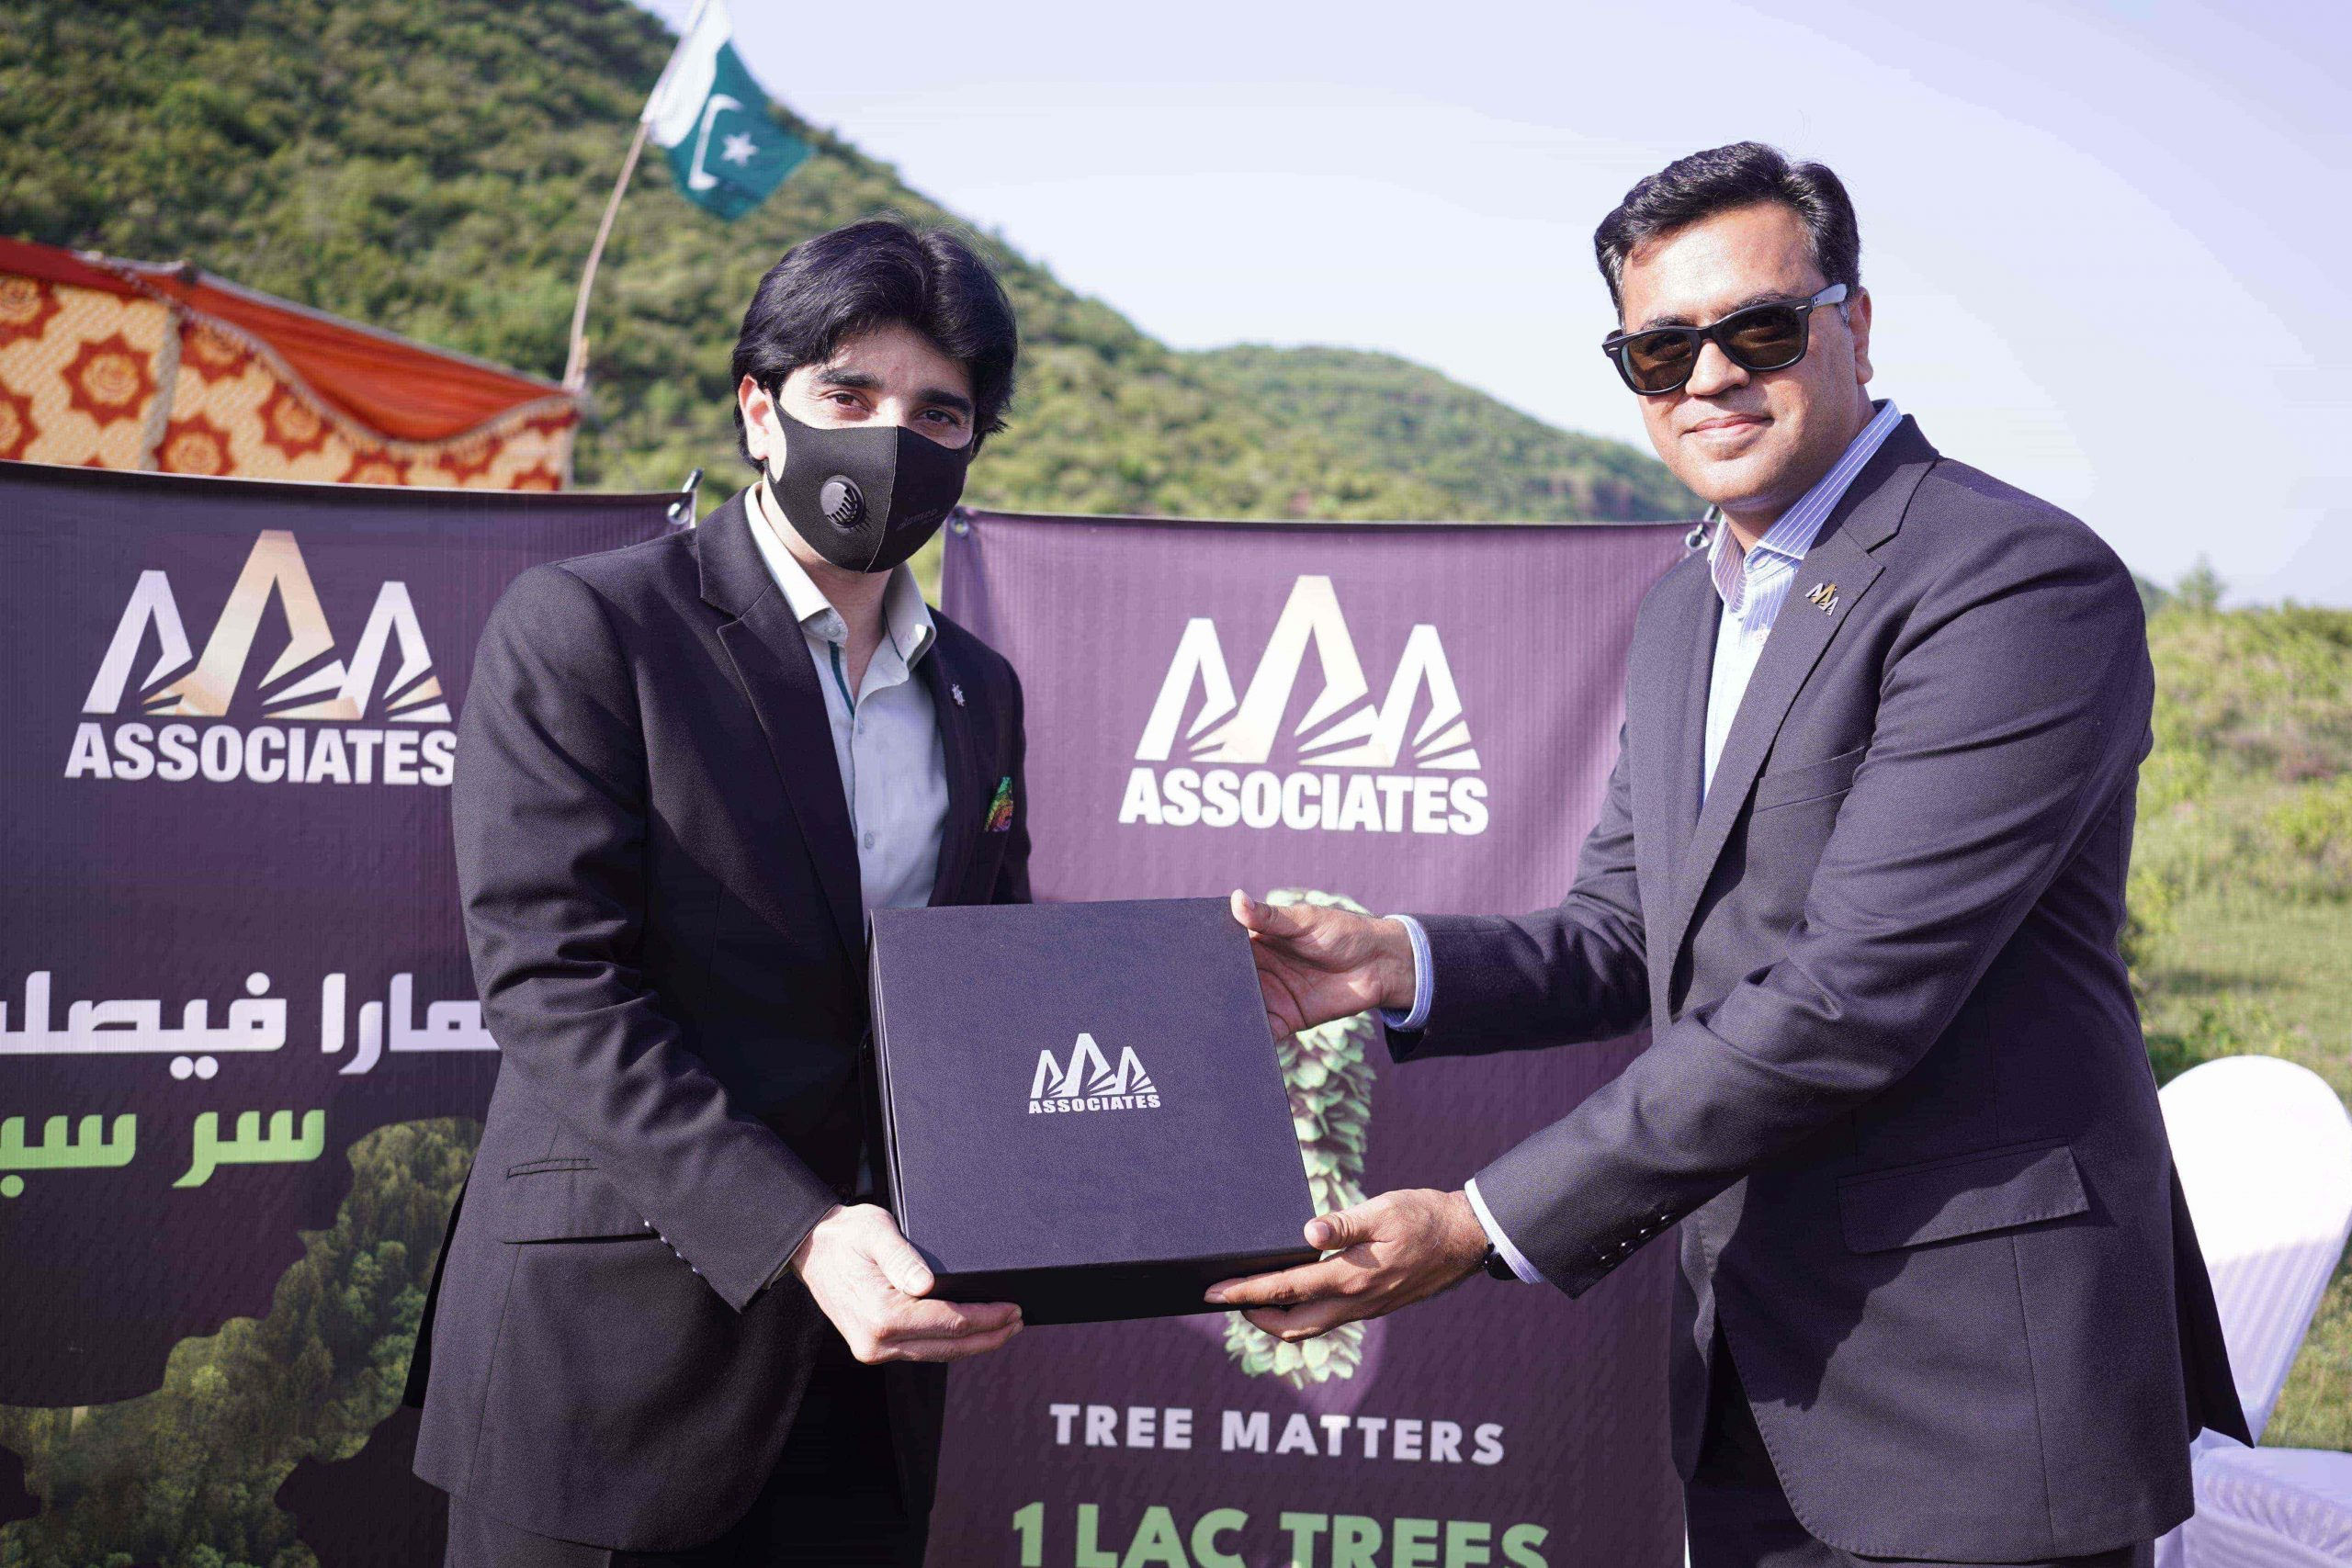 AAA Associates has initiated 1-Lac Tree Plantation Drive in Continuation